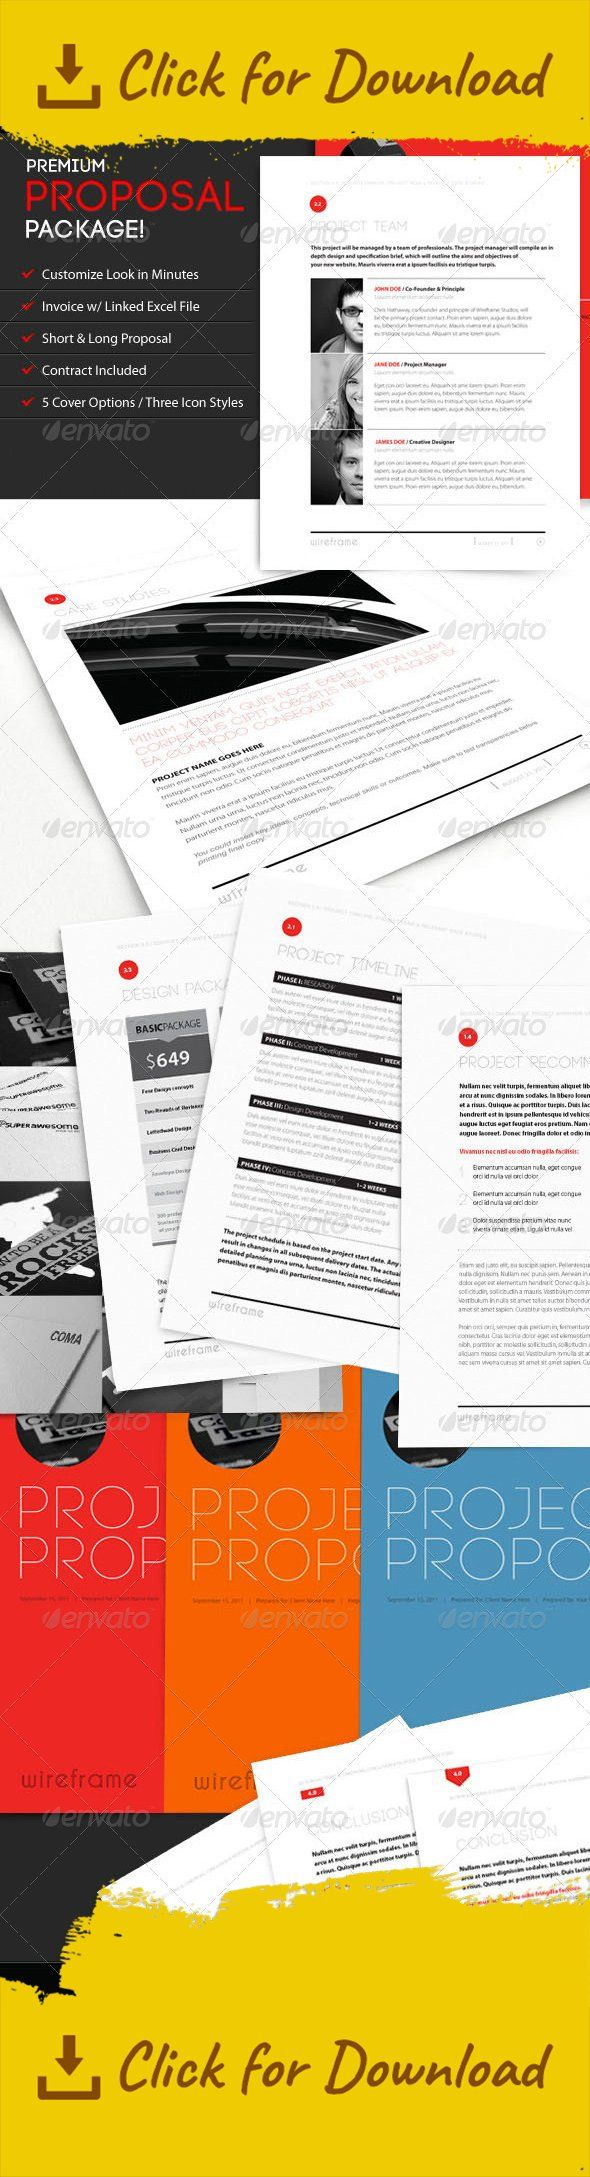 agreement, agreement form, business proposal, business proposal template, completion form, contract, create an invoice, design project proposal, design proposal, design proposal sample, estimate, excel invoice, freelance proposal template, graphic design proposal, invoice proforma, invoice sample, invoice template, invoice template excel, job proposal template, office invoice template, project proposal, project proposal template, proposal example, proposal sample, proposal template, sample…